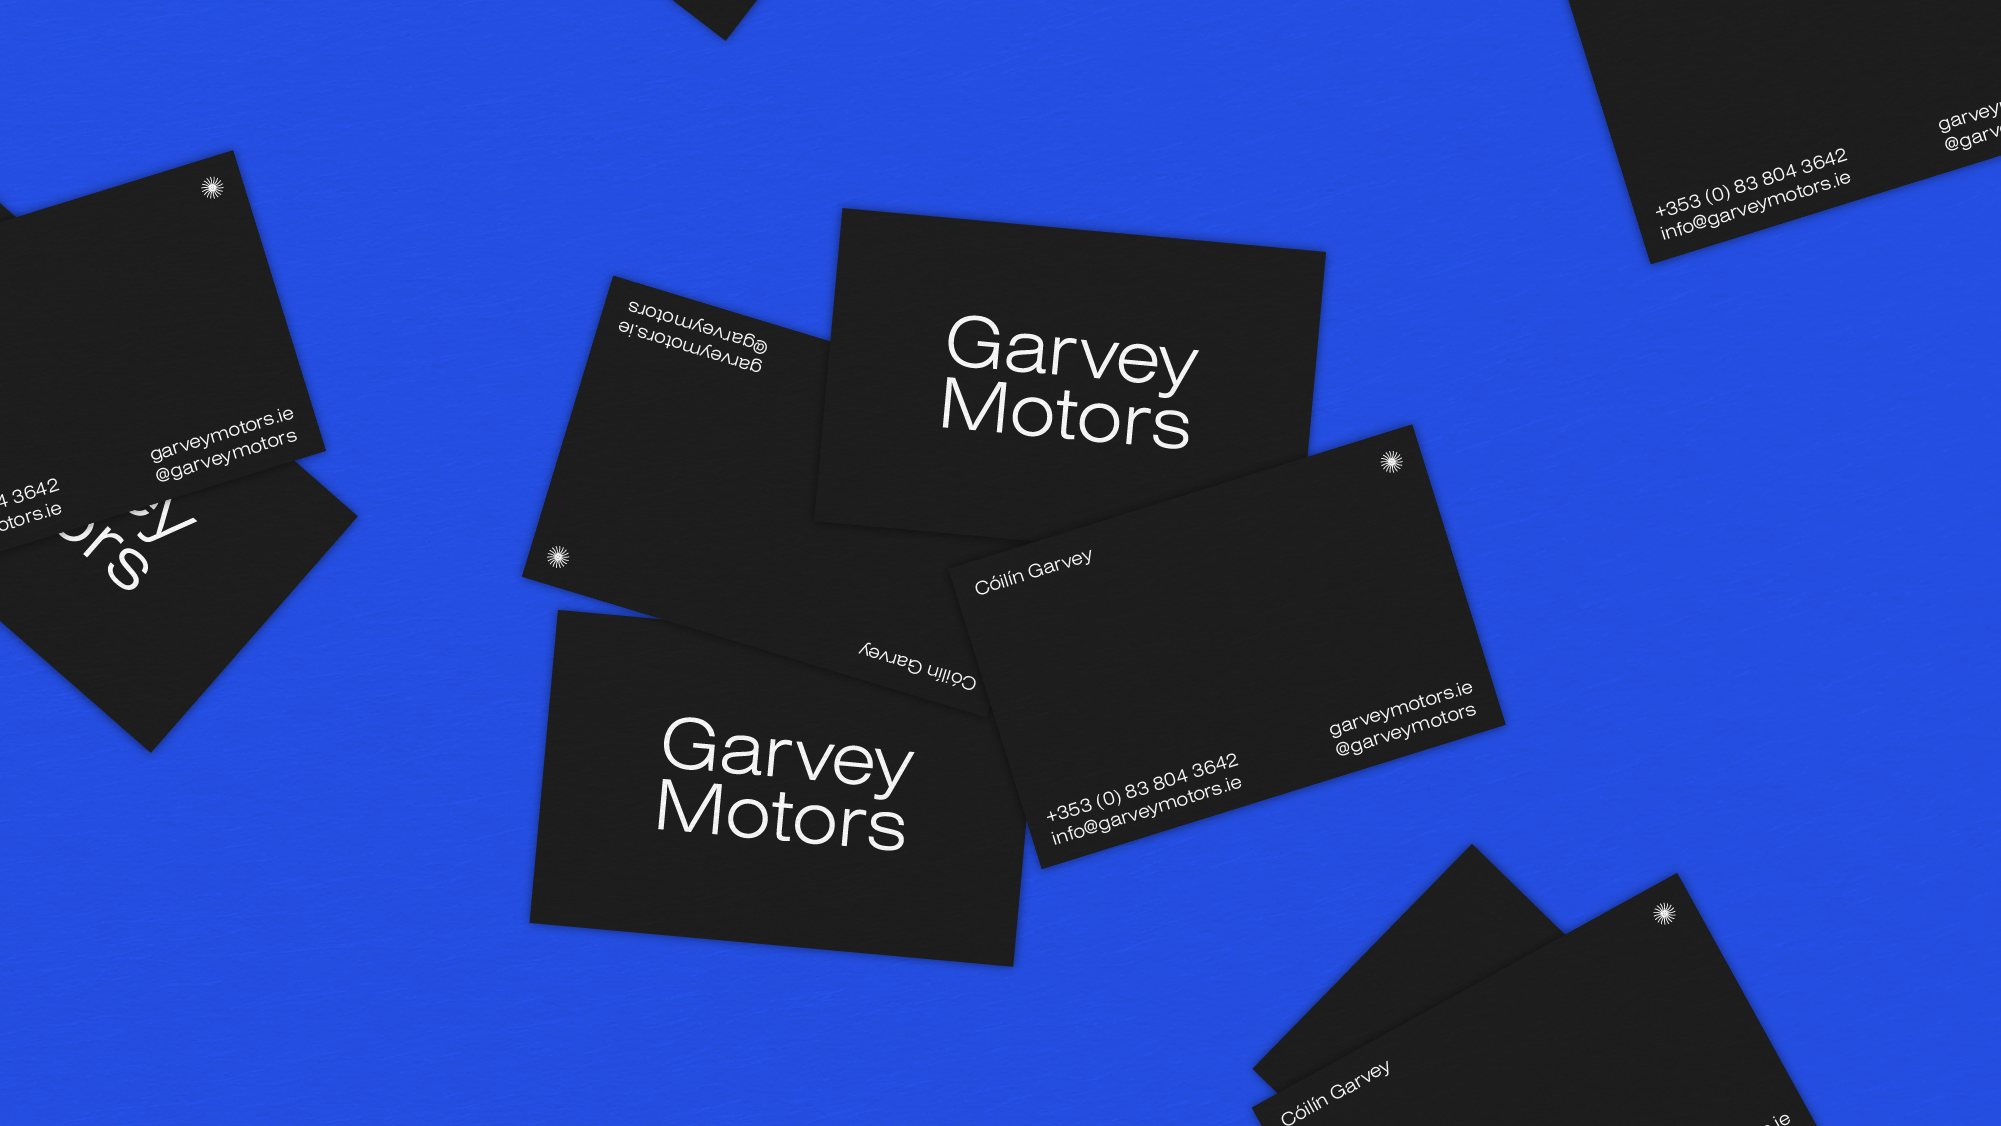 Cover image: Garvey Motors